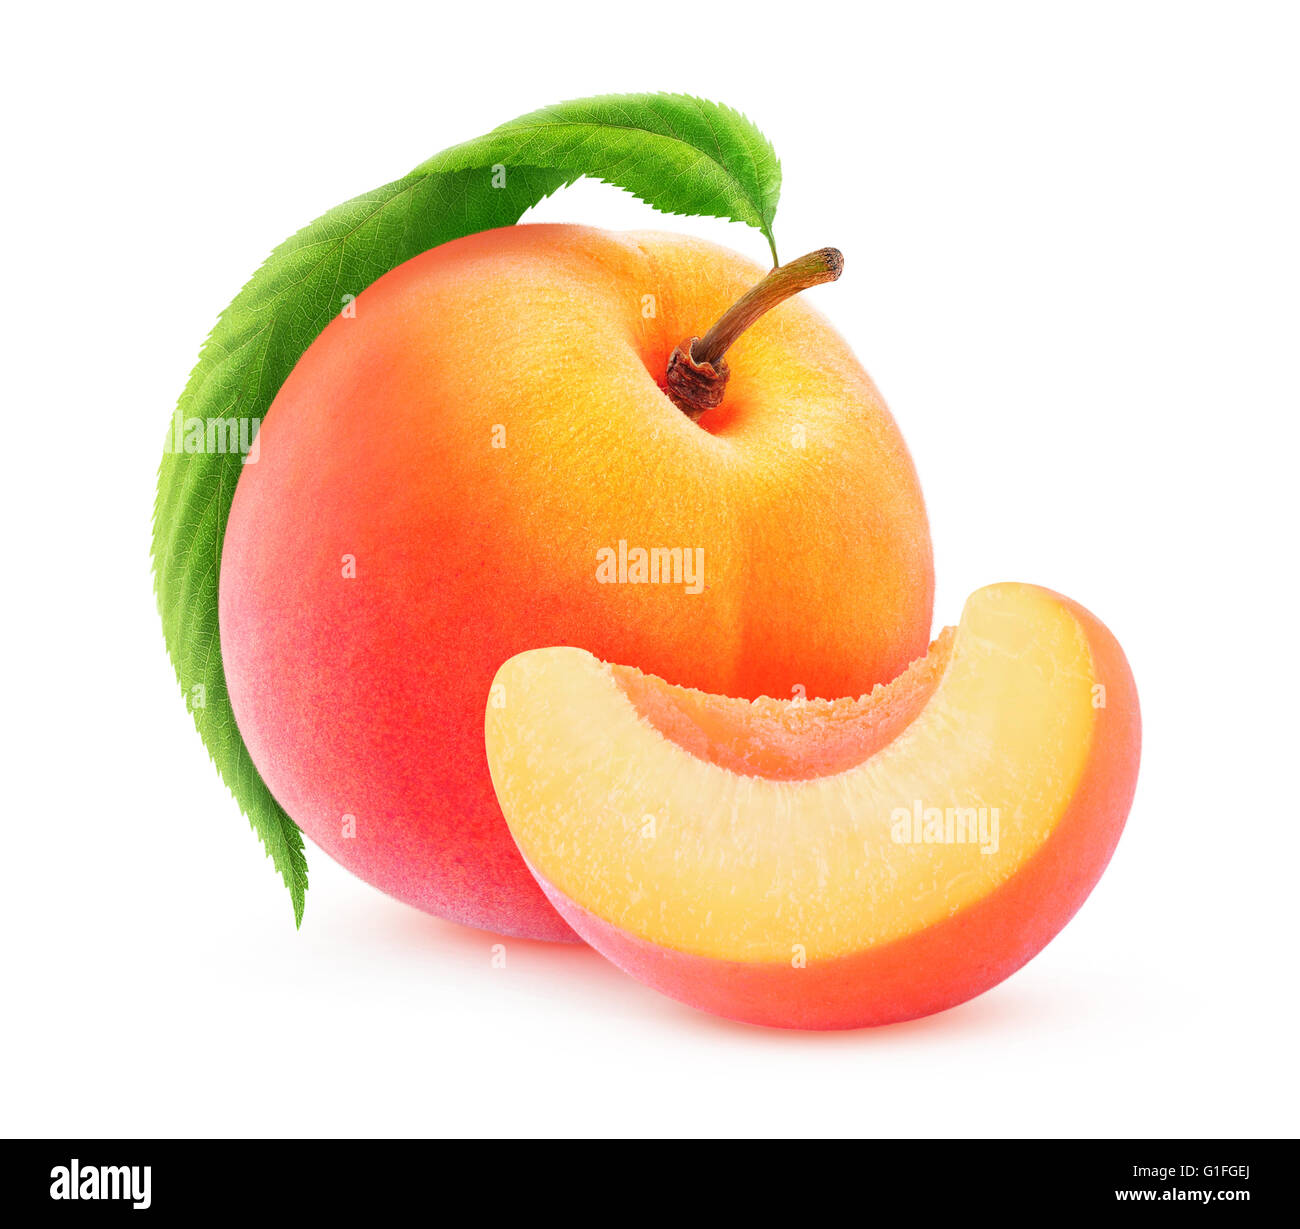 Isolated peach. Peach or apricot whole fruit and a slice isolated on white background with clipping path - Stock Image